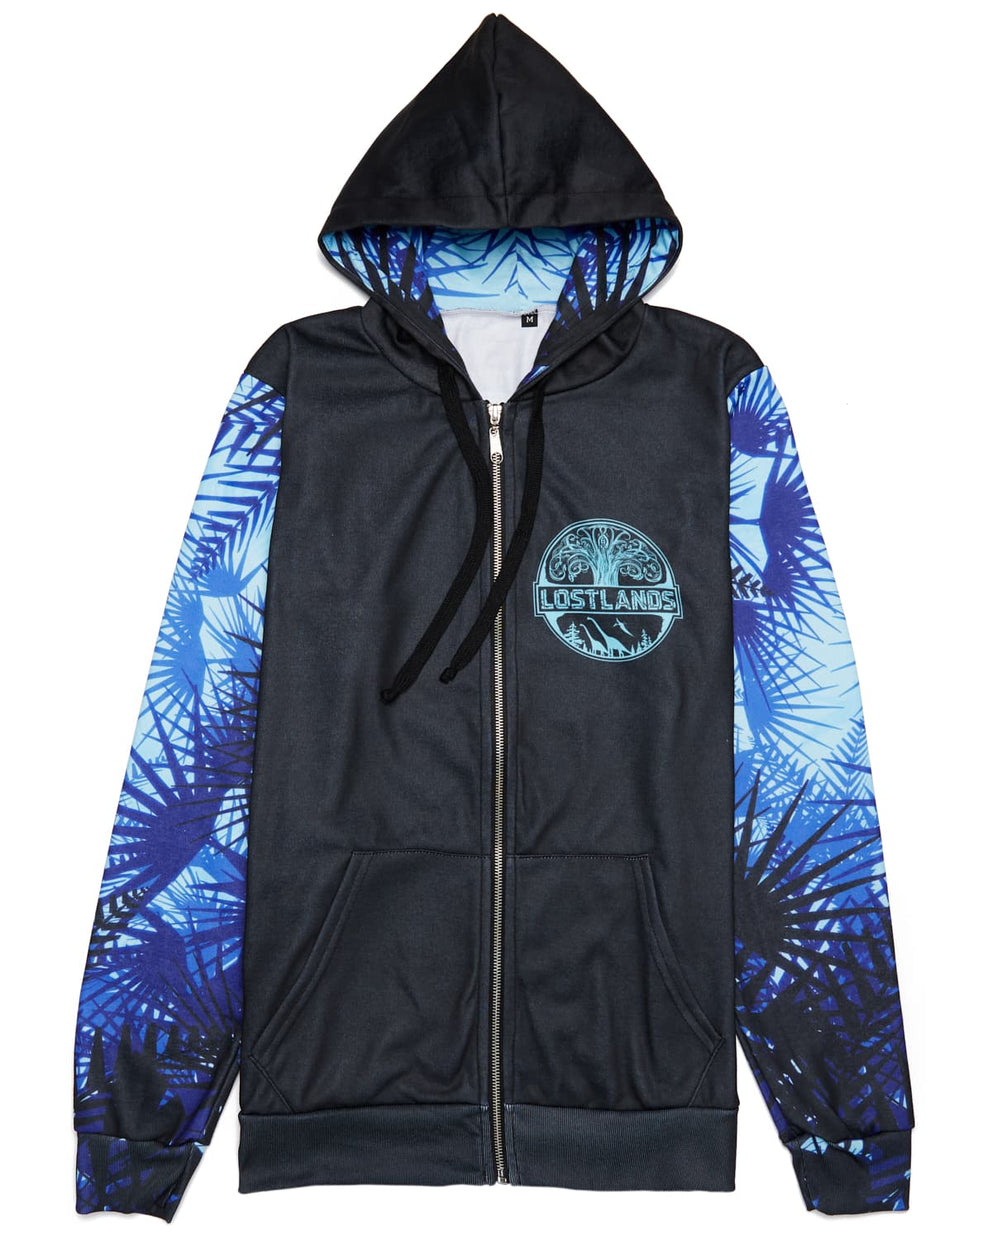 Lost Lands 'Foliage' Lineup Full-Zip Hoodie - Black/Blue